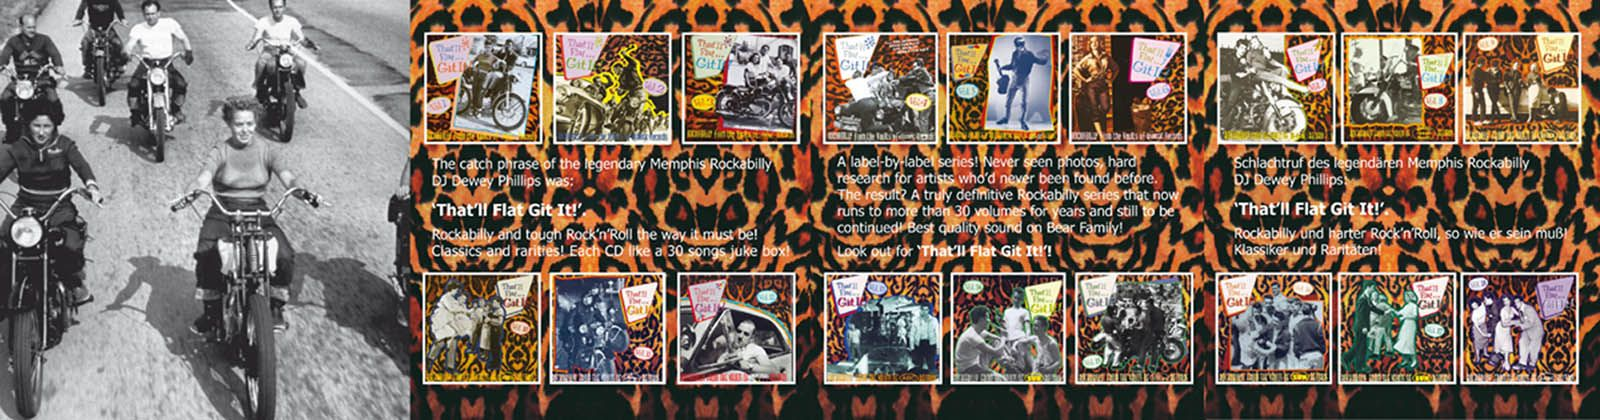 preview vol 5 rockabilly from the vaults of dot records cd